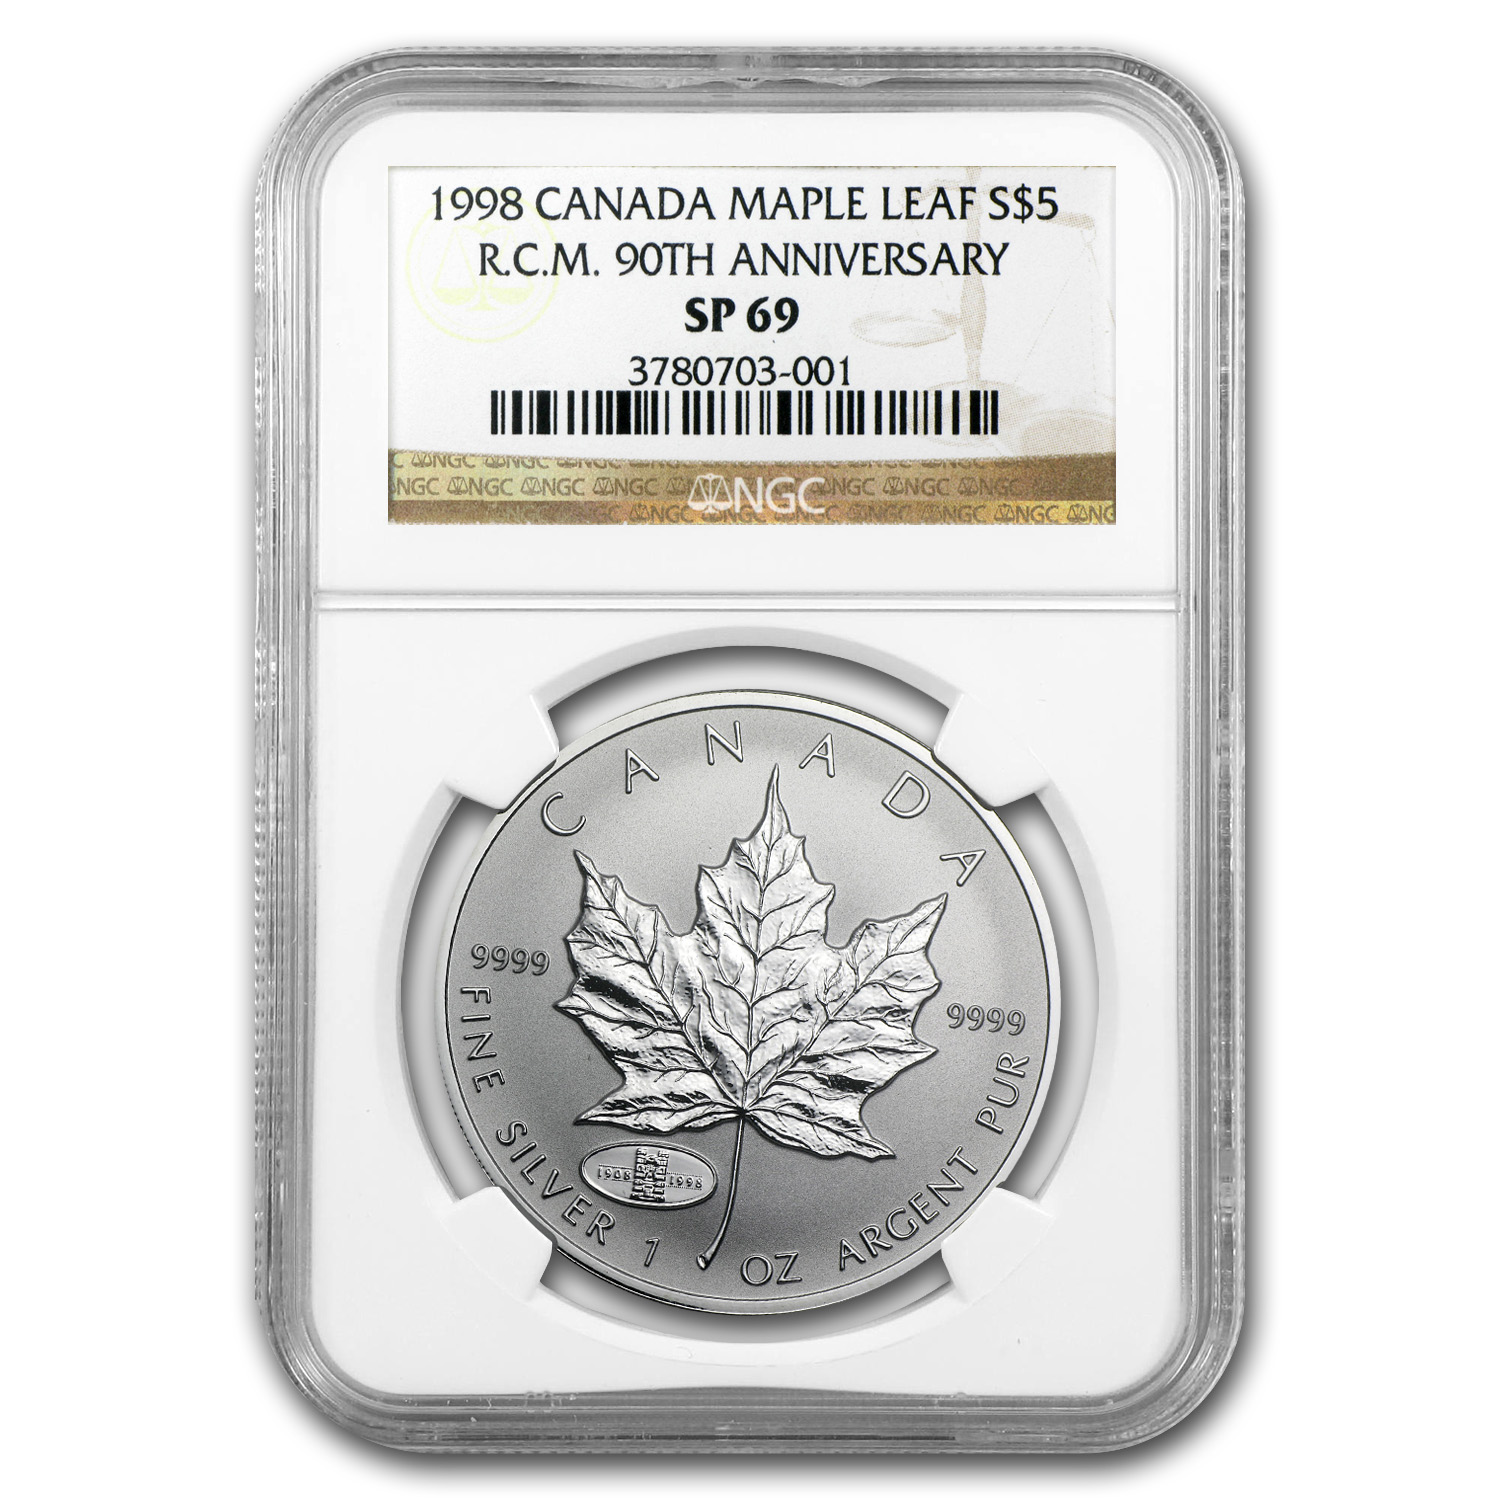 1998 1 oz Silver Canadian Maple Leaf (RCM Privy) - SP-69 NGC